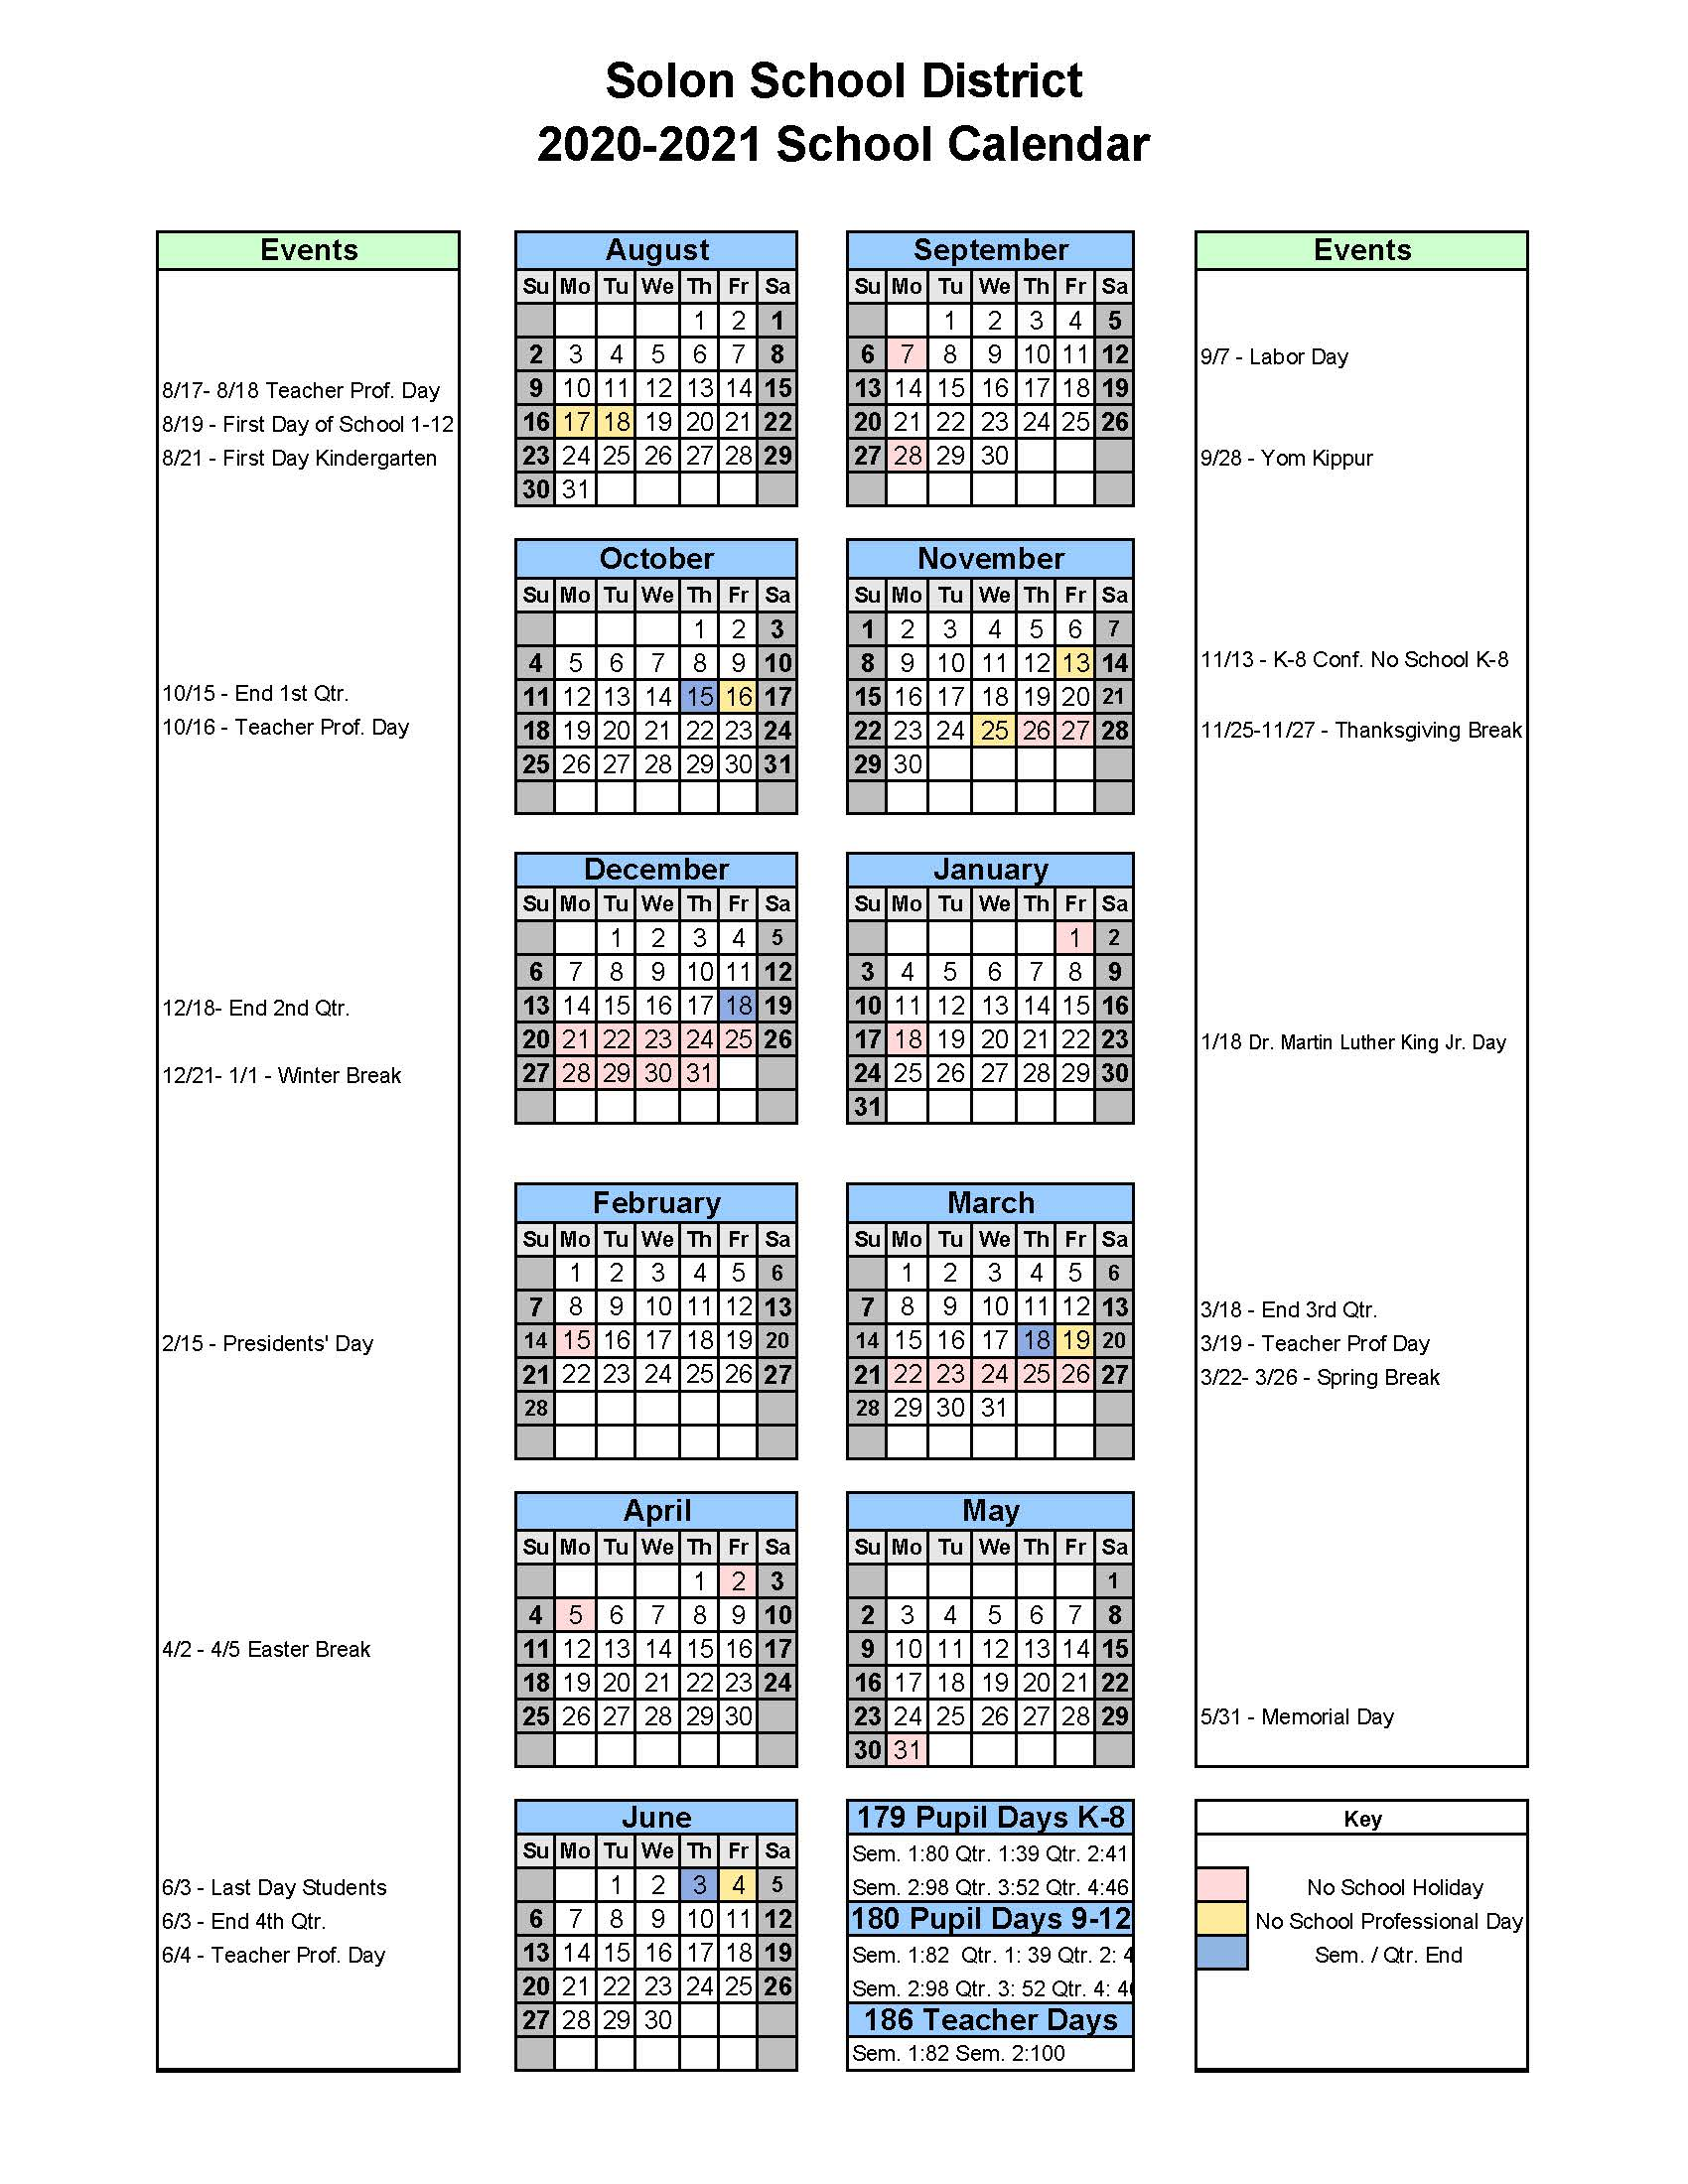 Entire year calendar grid for 2020-21 for the Solon Schools